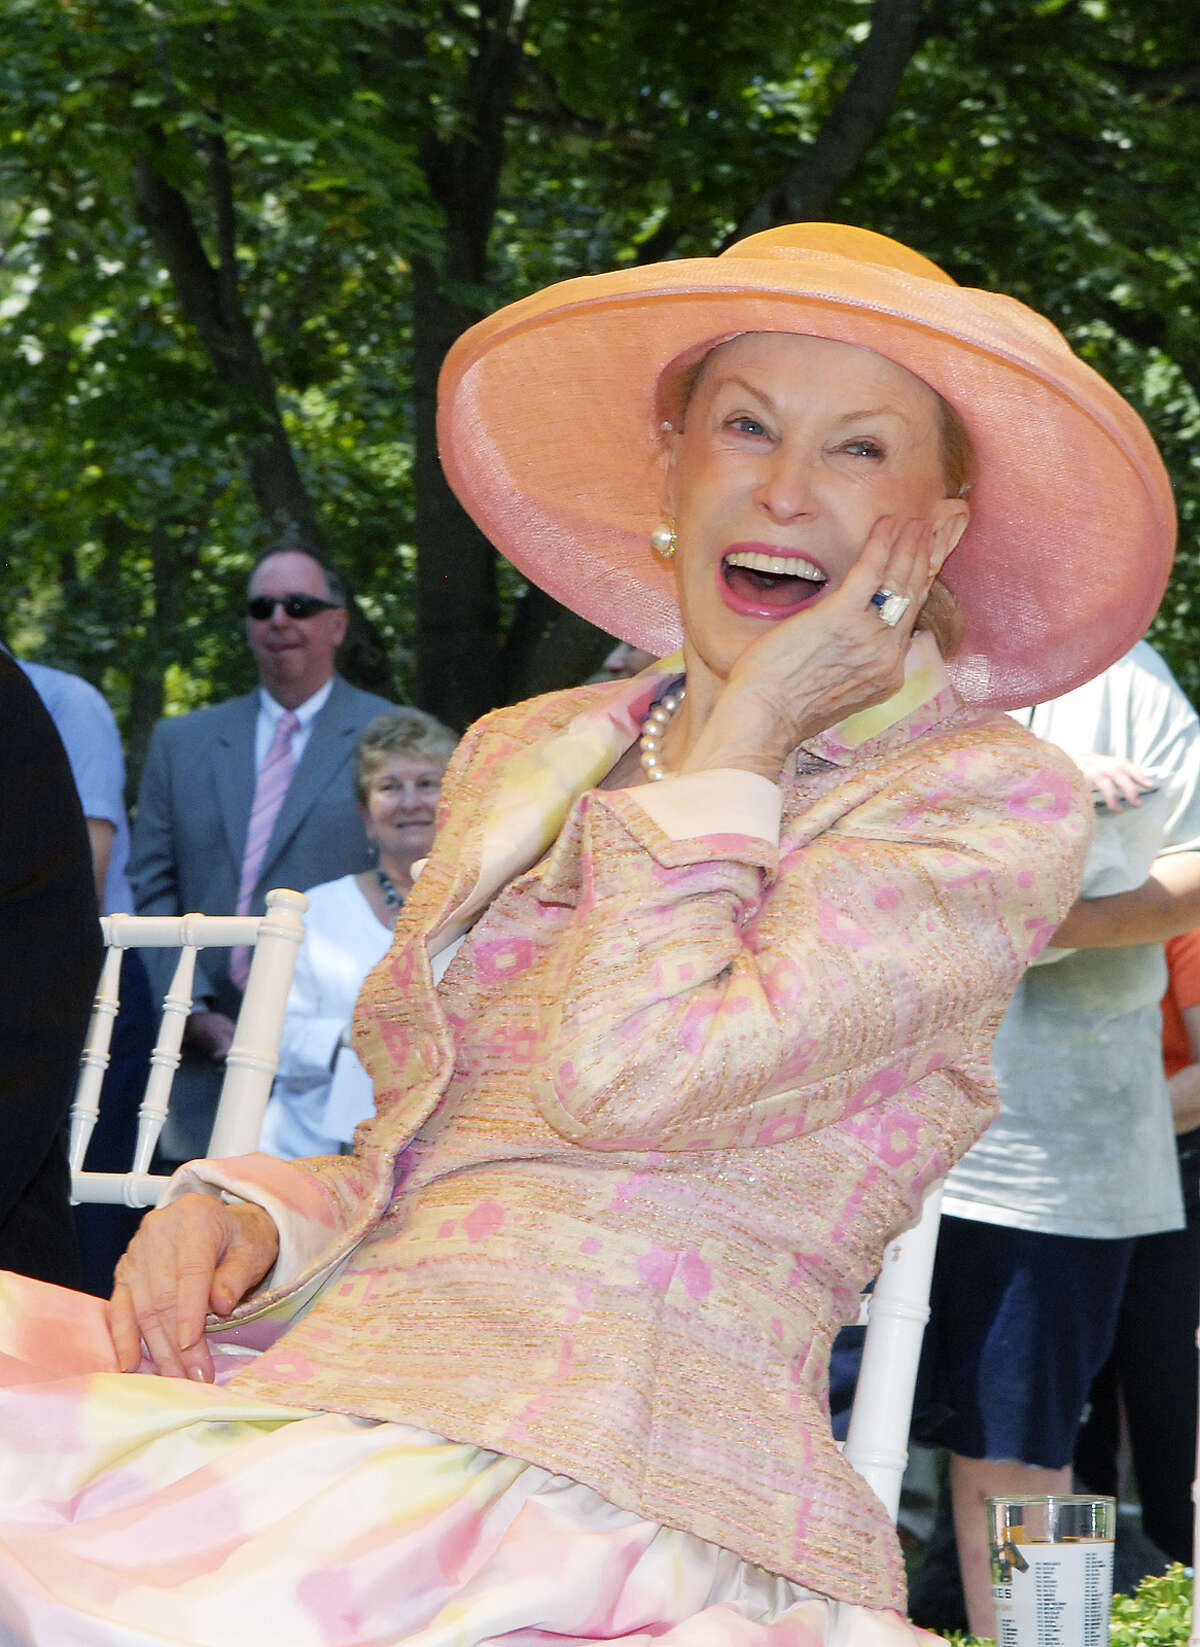 The website housing an auction of belongings from the late Saratoga Springs philanthropist and socialite Marylou Whitney crashed when visited clicked on the site when it launched Wednesday morning.